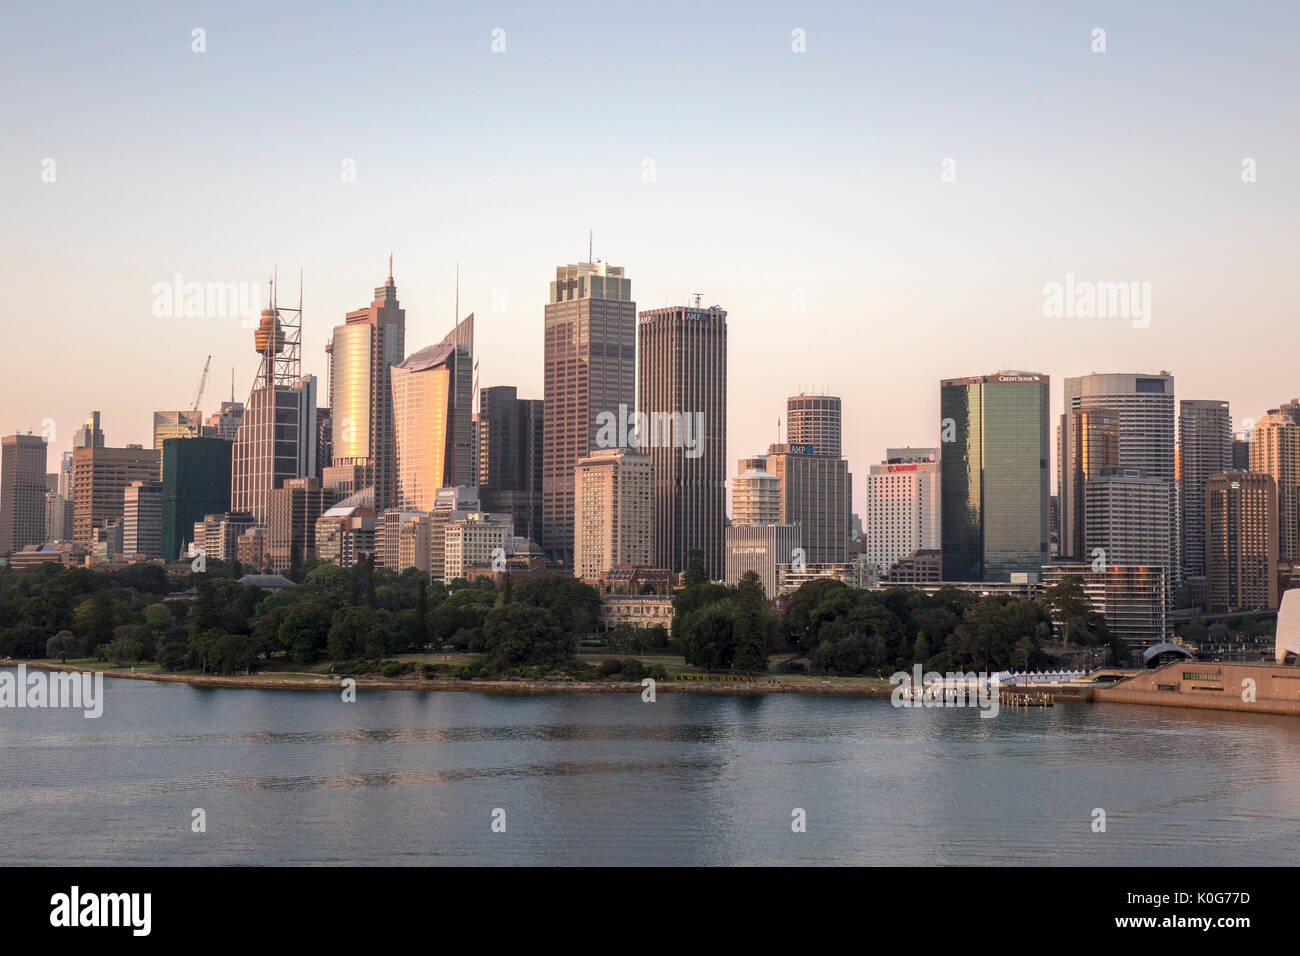 Early Morning Sunrise Sydney Downtown Central Business District (CBD) Skyline Including The Sydney Tower Eye Australia - Stock Image